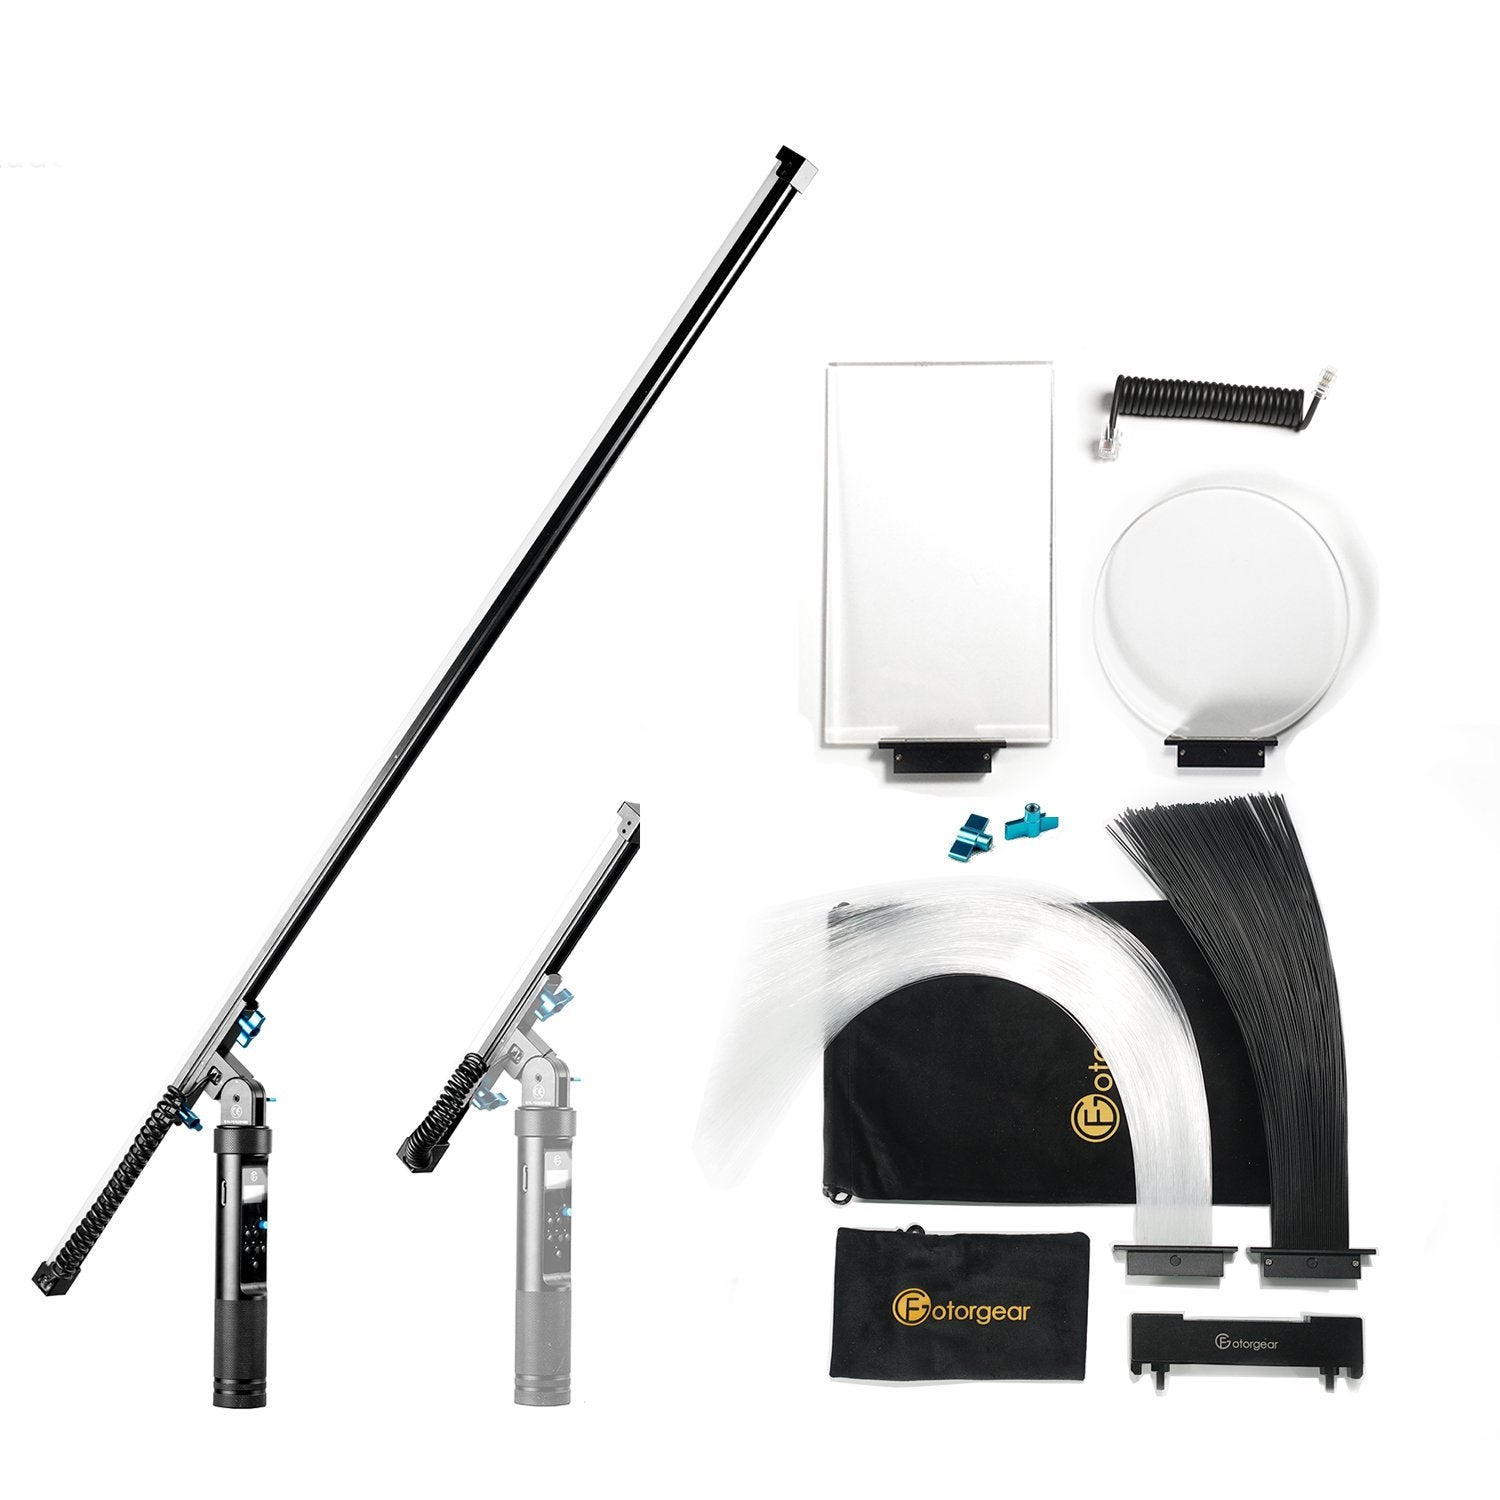 fotorgear Magilight with Mini stick & Lithub Advanced Bundle